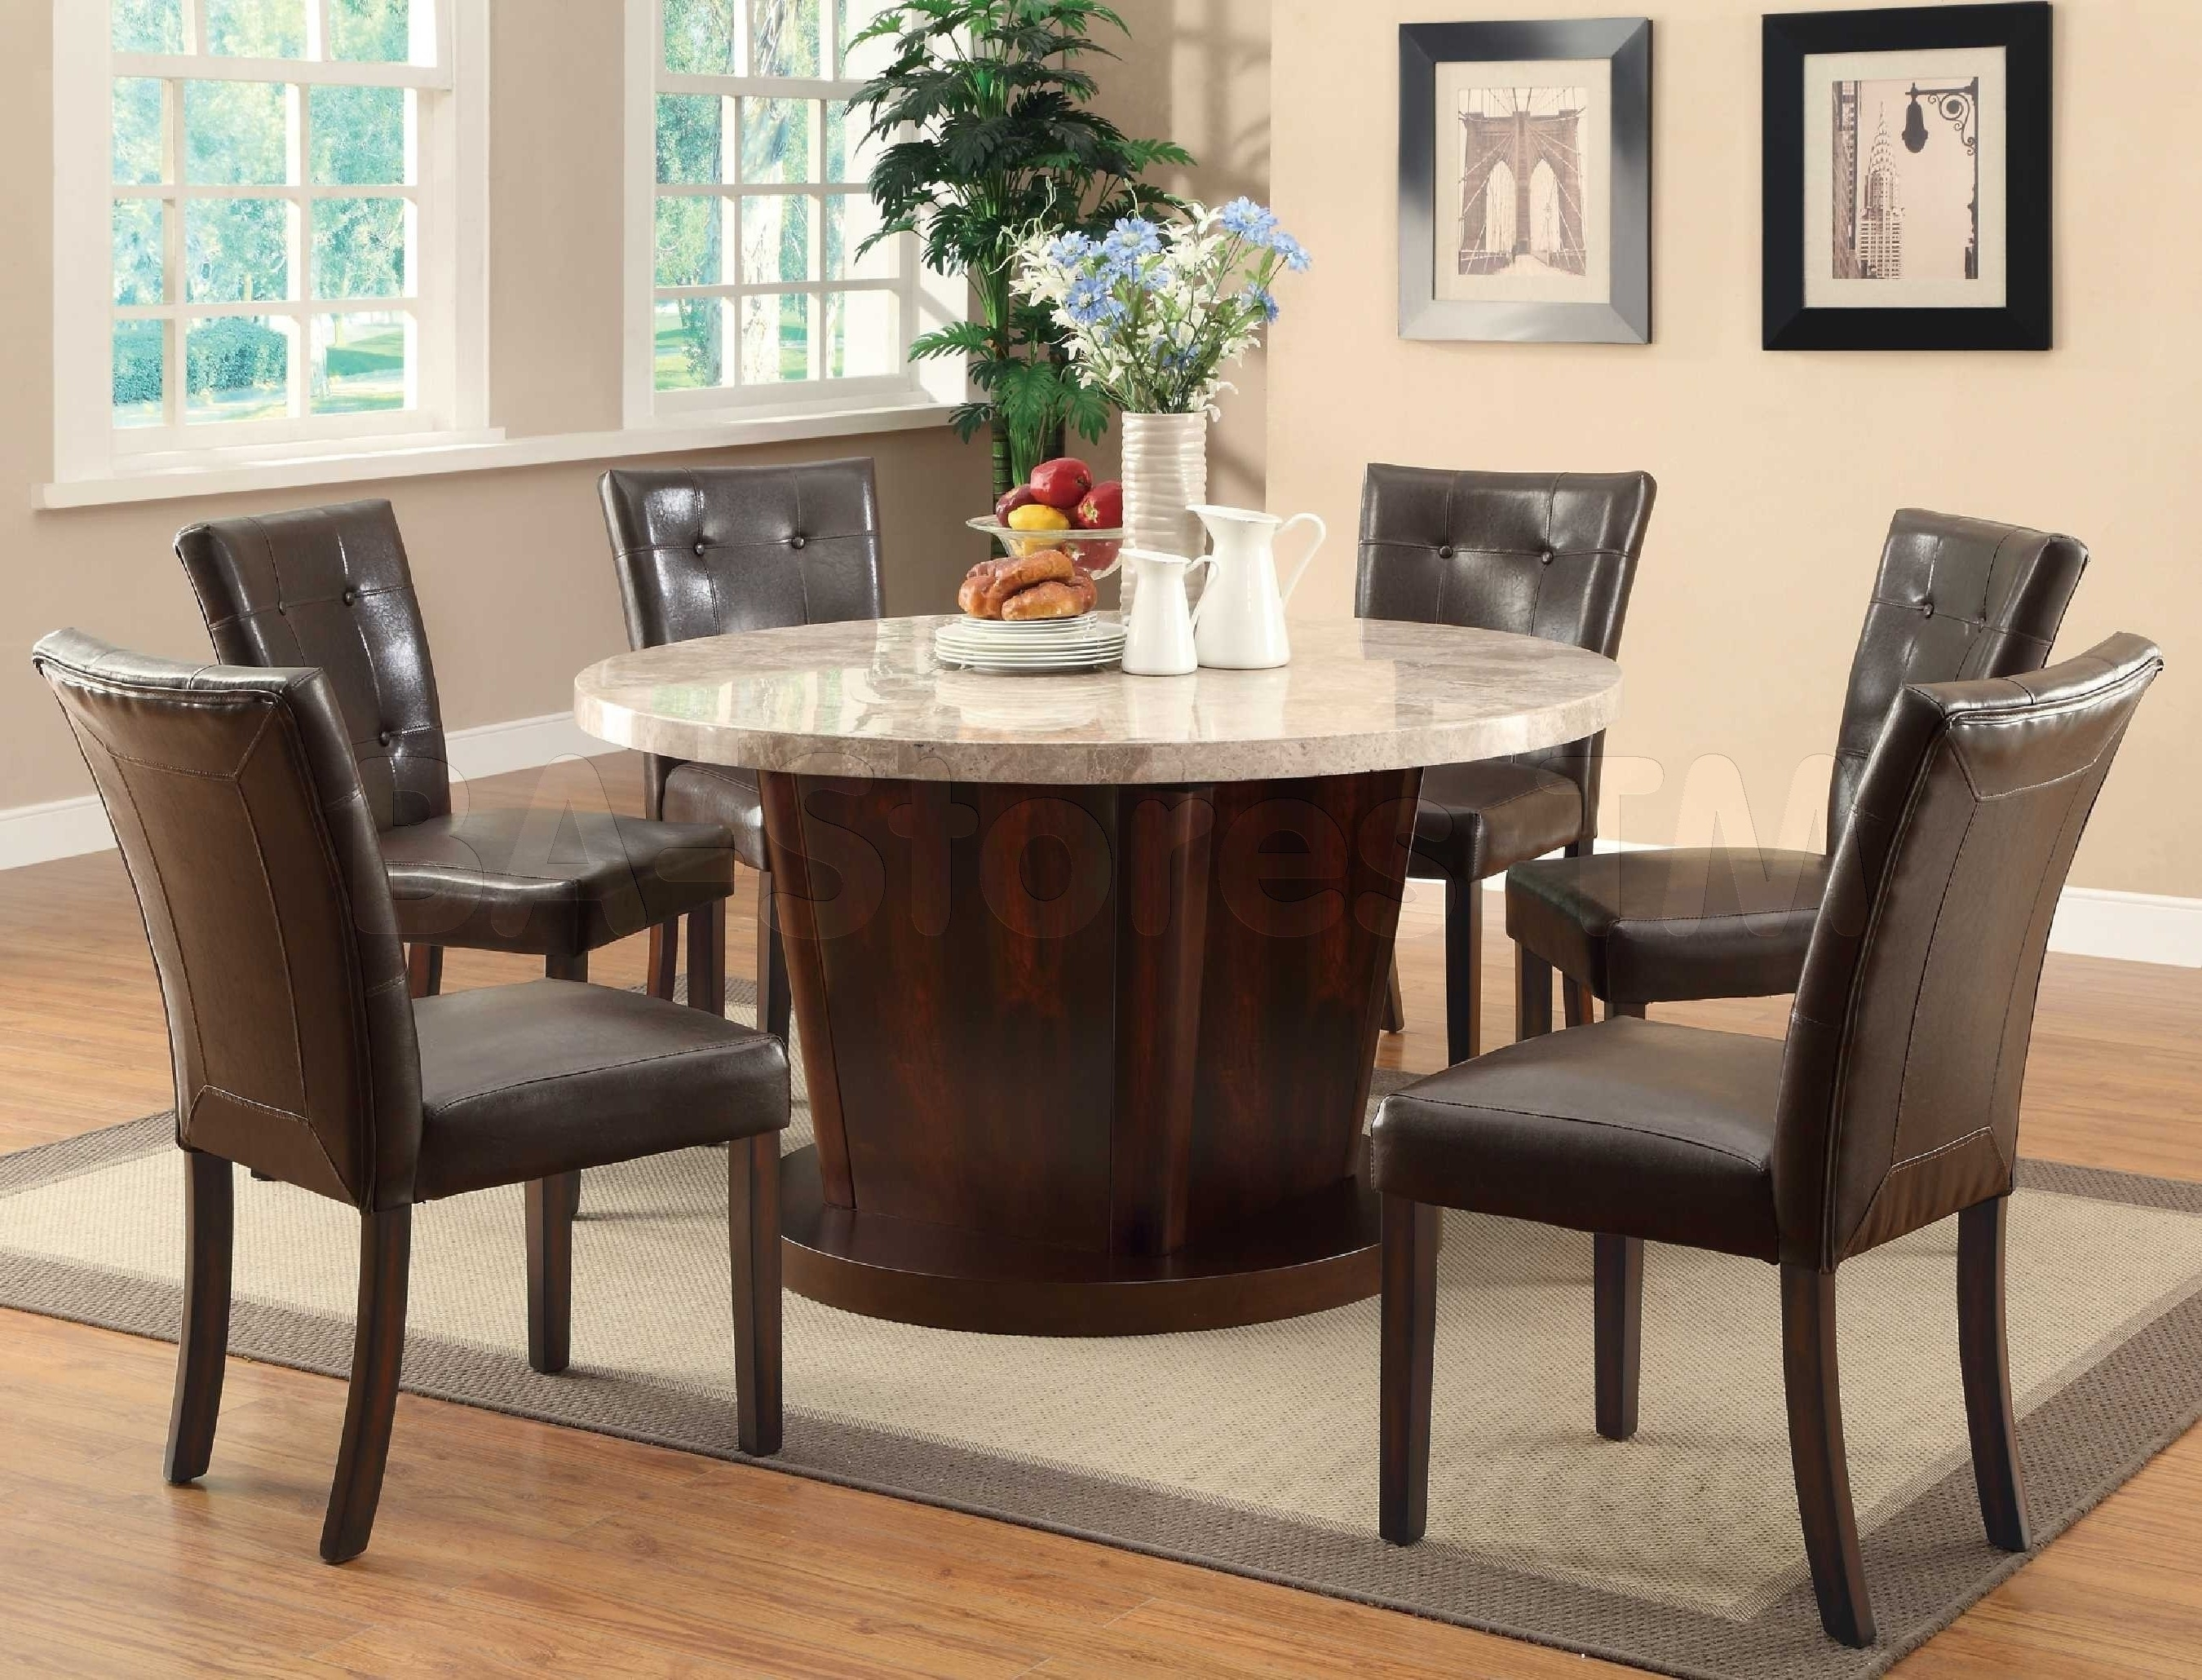 Dining Table And 10 Chairs With Regard To Newest 10 Seater Dining Table And Chairs Elegant Modern Dining Room Tables (View 9 of 25)